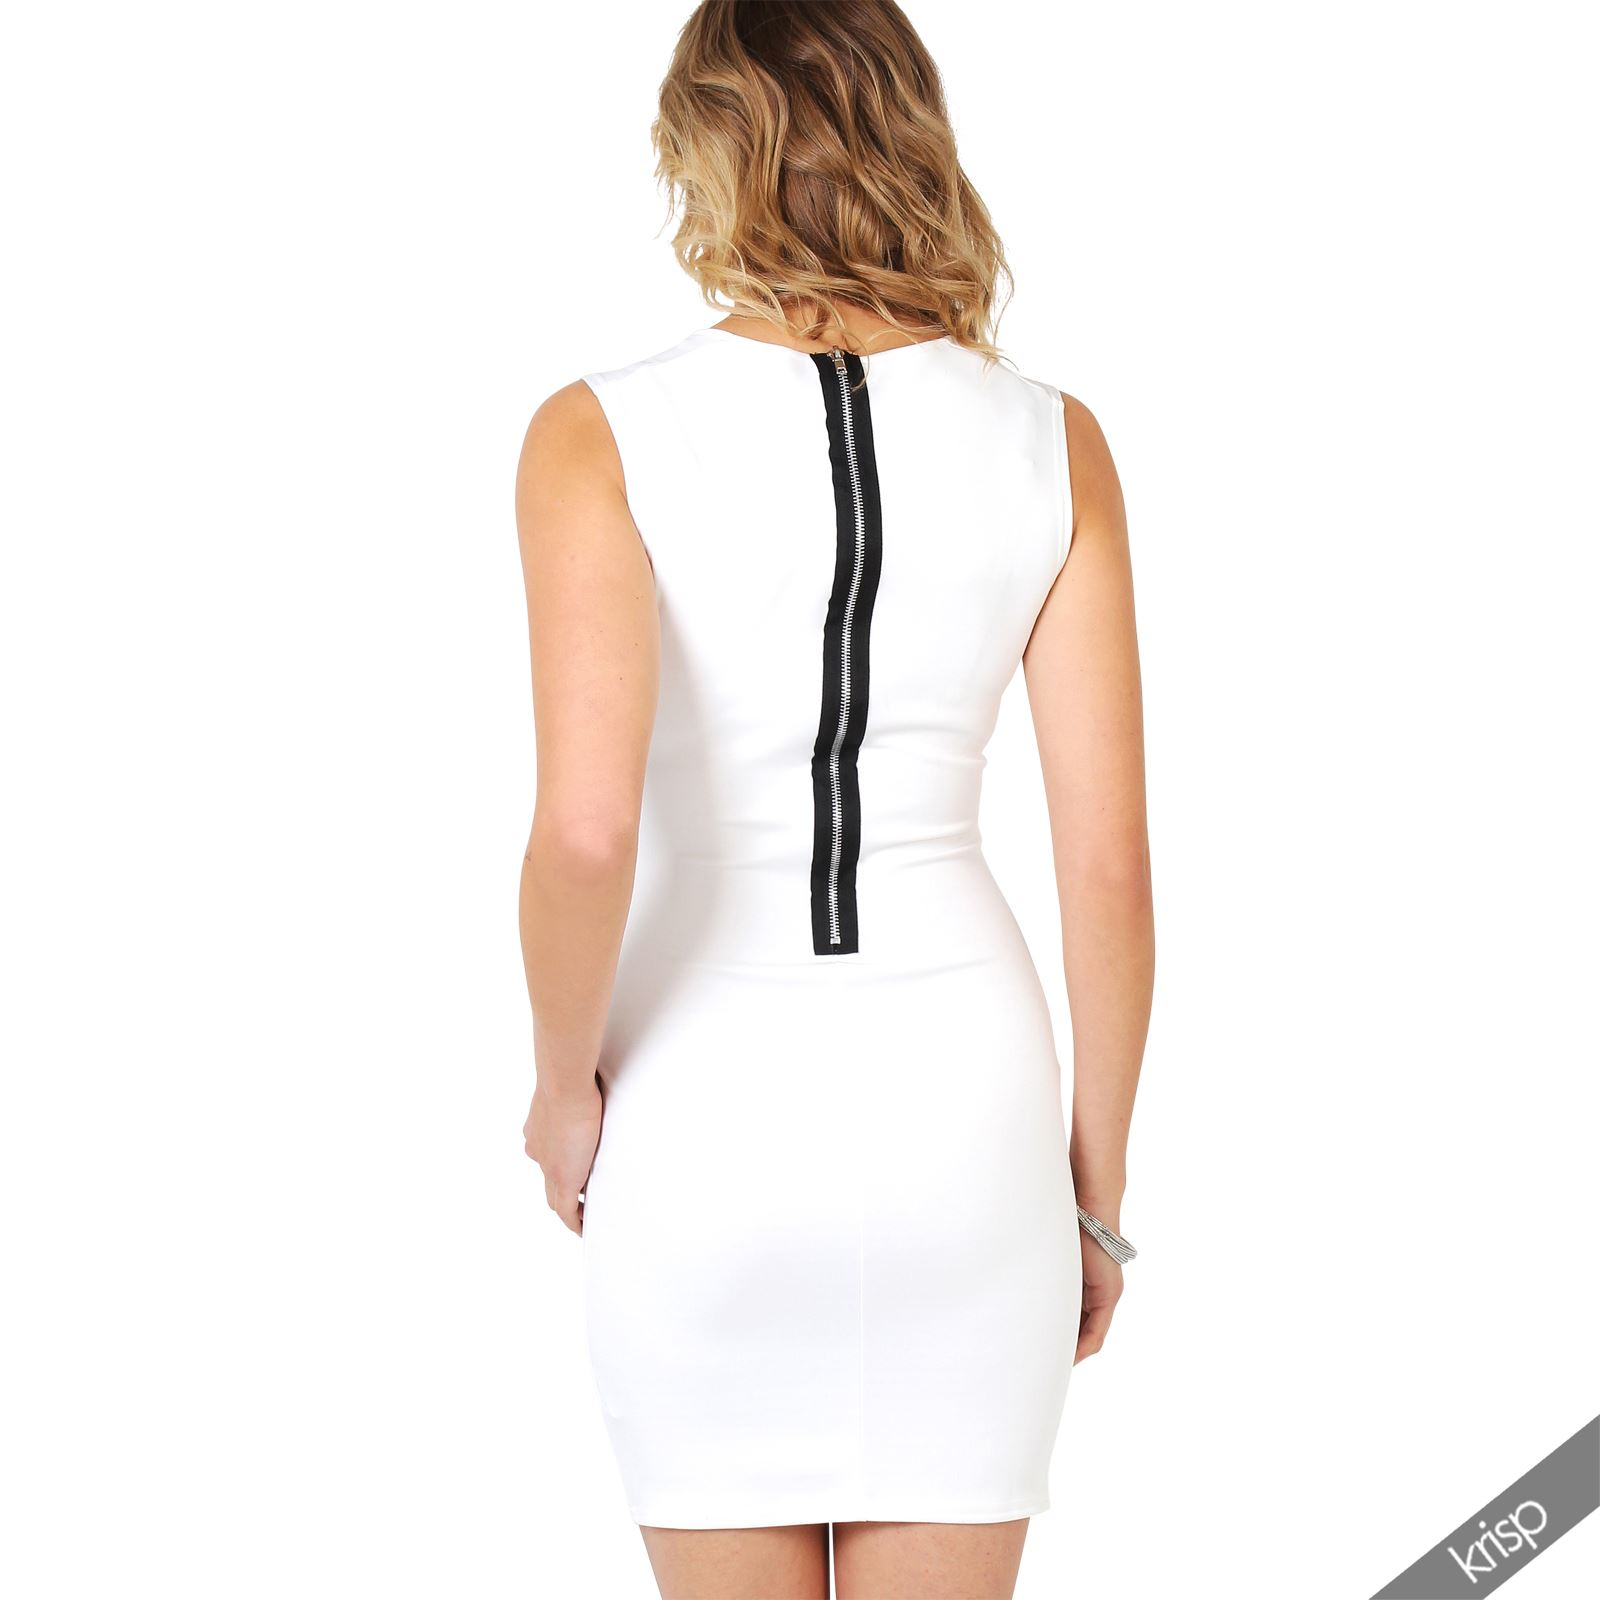 Ladies-Fashion-Bodycon-Dress-Sleeveless-Backless-Party-Fitted-Cocktail-Pencil thumbnail 7